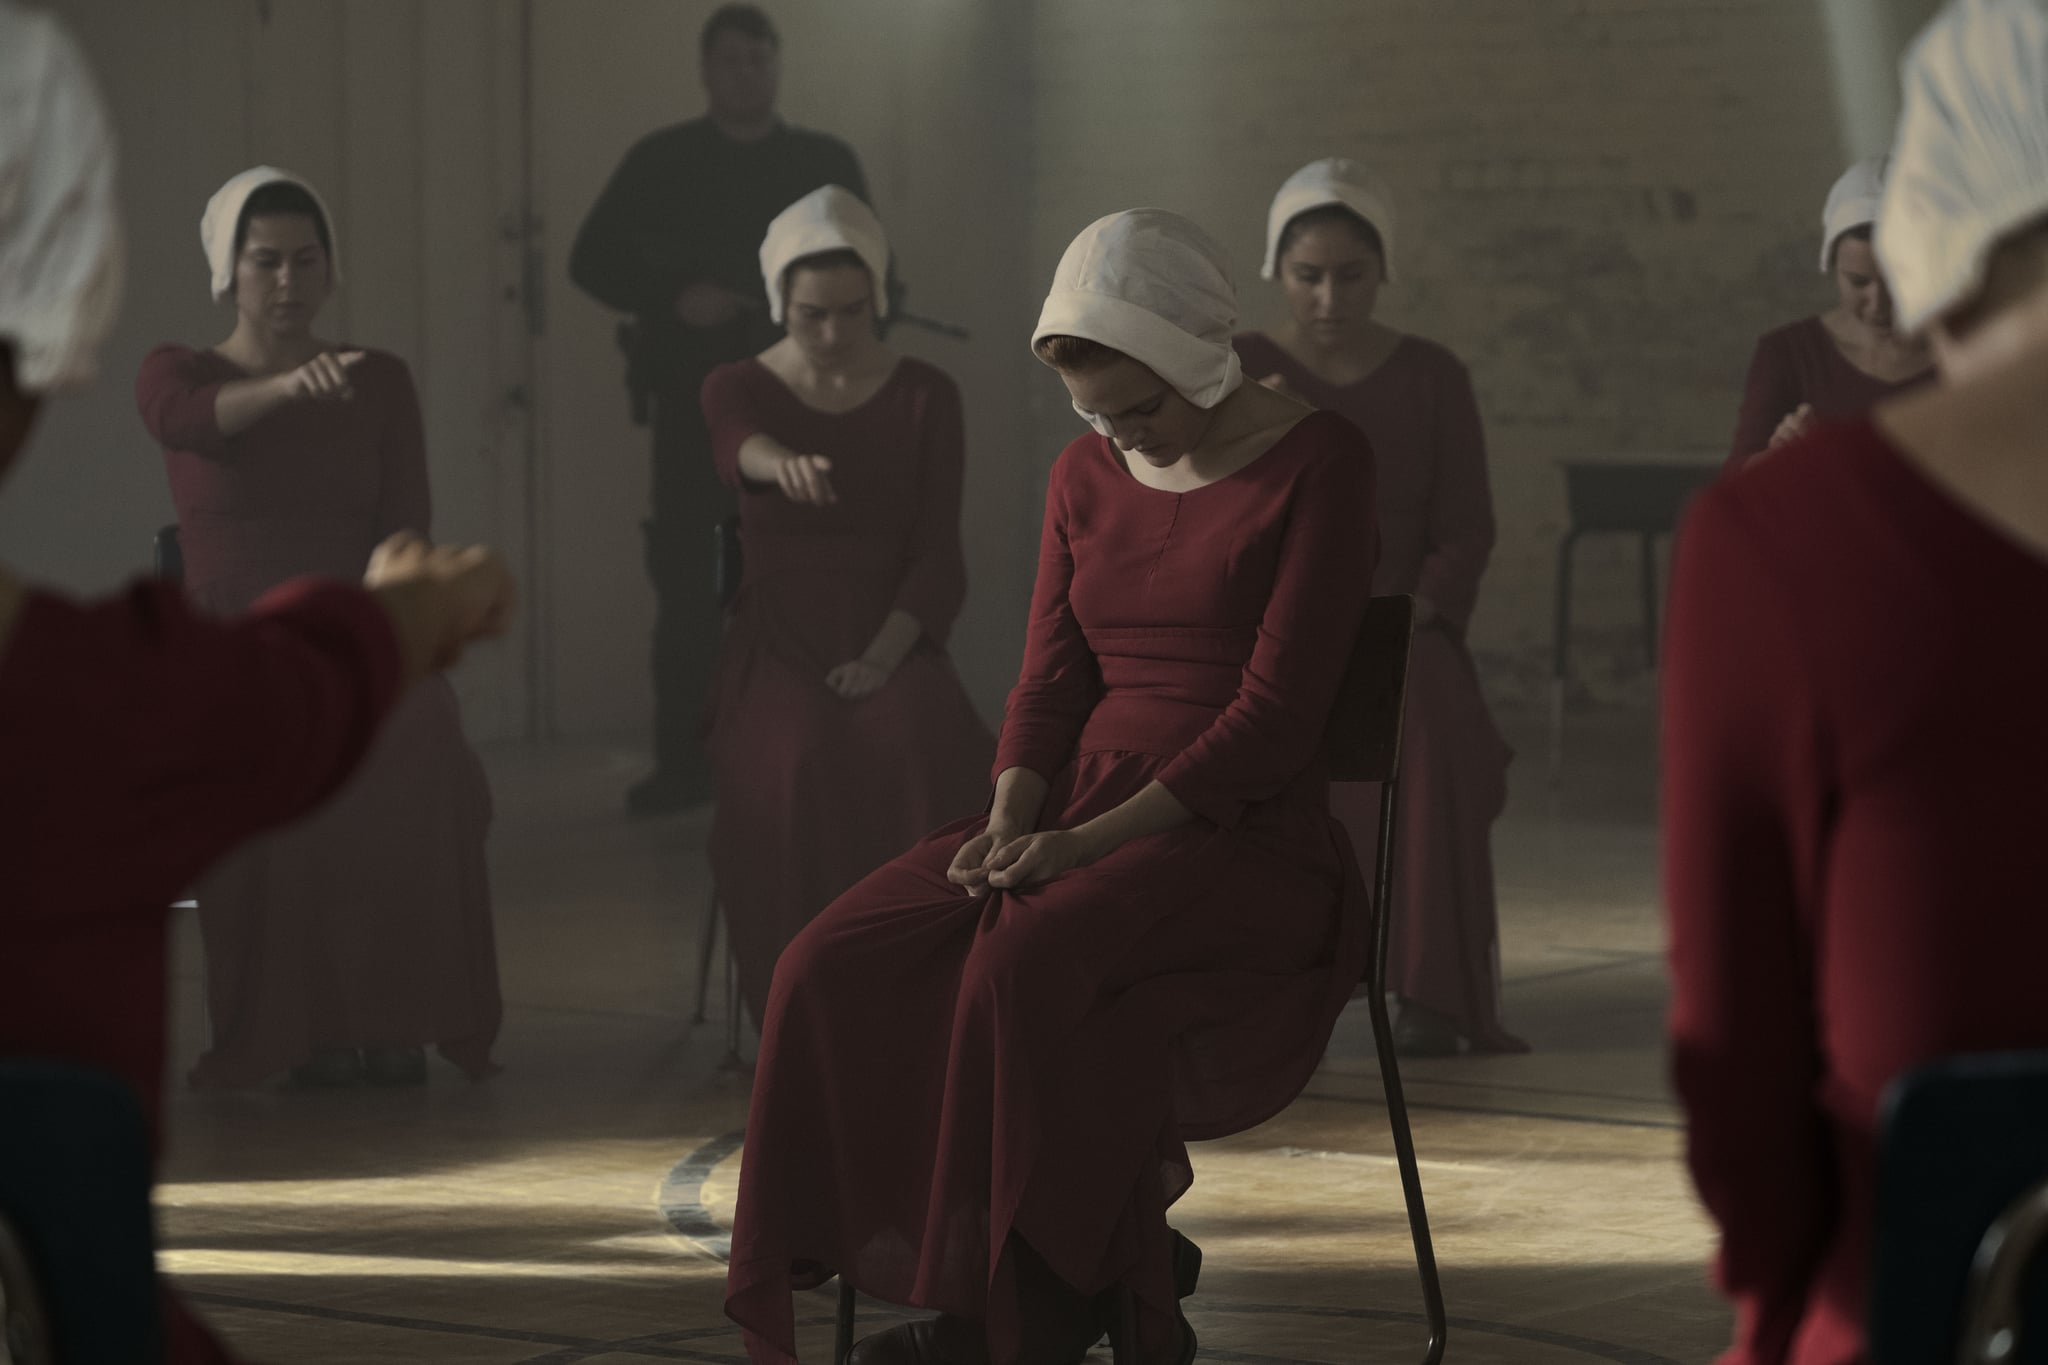 the daily role of oppression in society in the handmaids tale a novel by margaret atwood Audie award, fiction, 2013 margaret atwood's popular dystopian novel the handmaid's tale explores a broad range of issues relating to power, gender and religious politics the handmaid's.